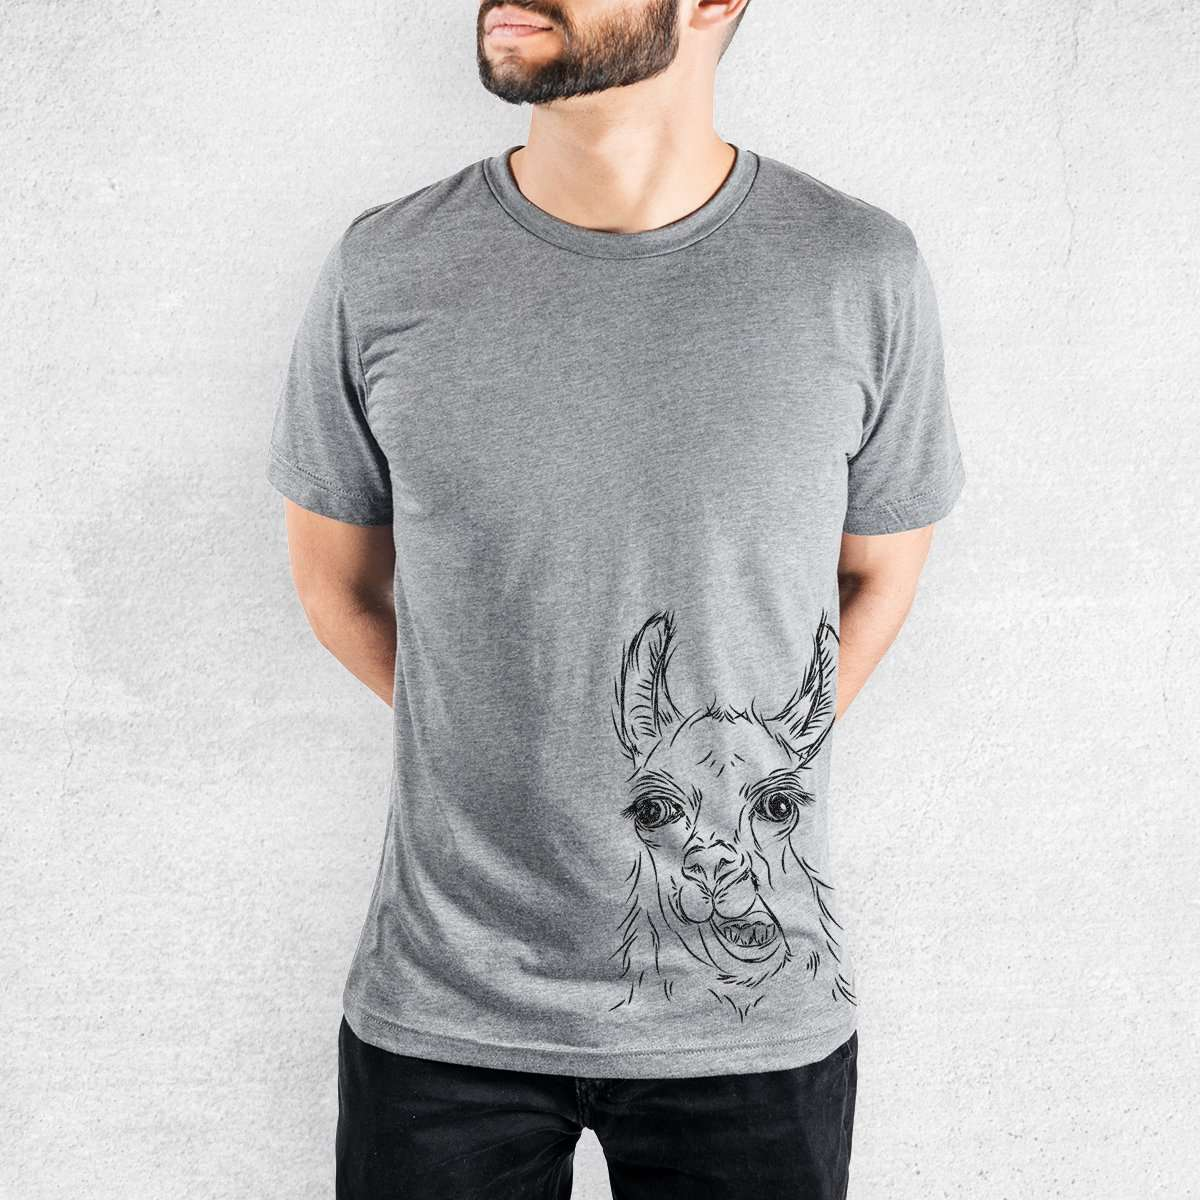 Larry the Llama - Tri-Blend Unisex Crew Shirt